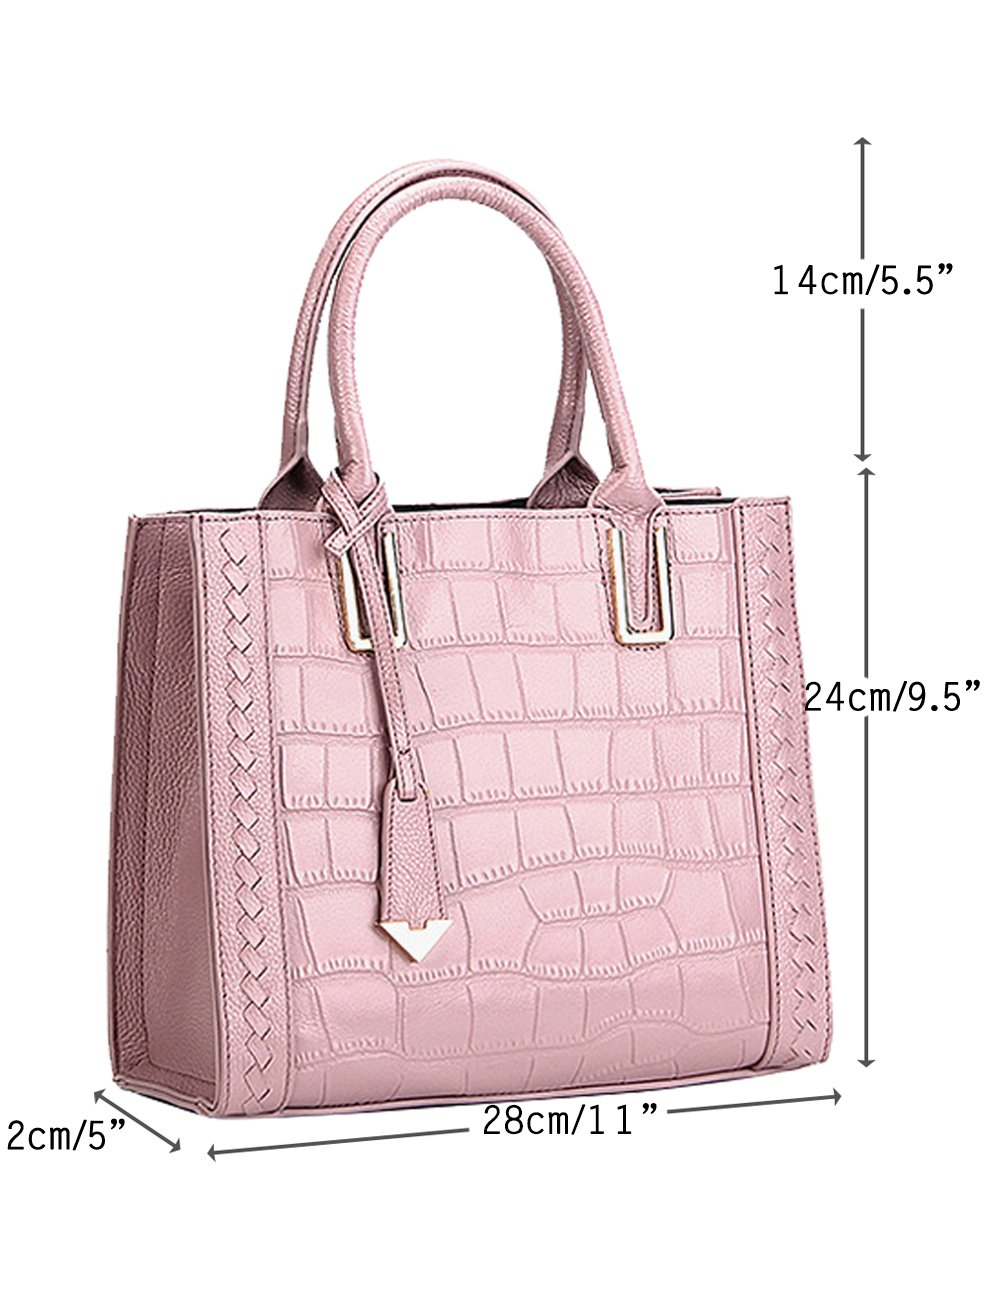 Menschwear Womens Genuine Leather Top Handle Satchel Bag Pink by Menschwear (Image #2)